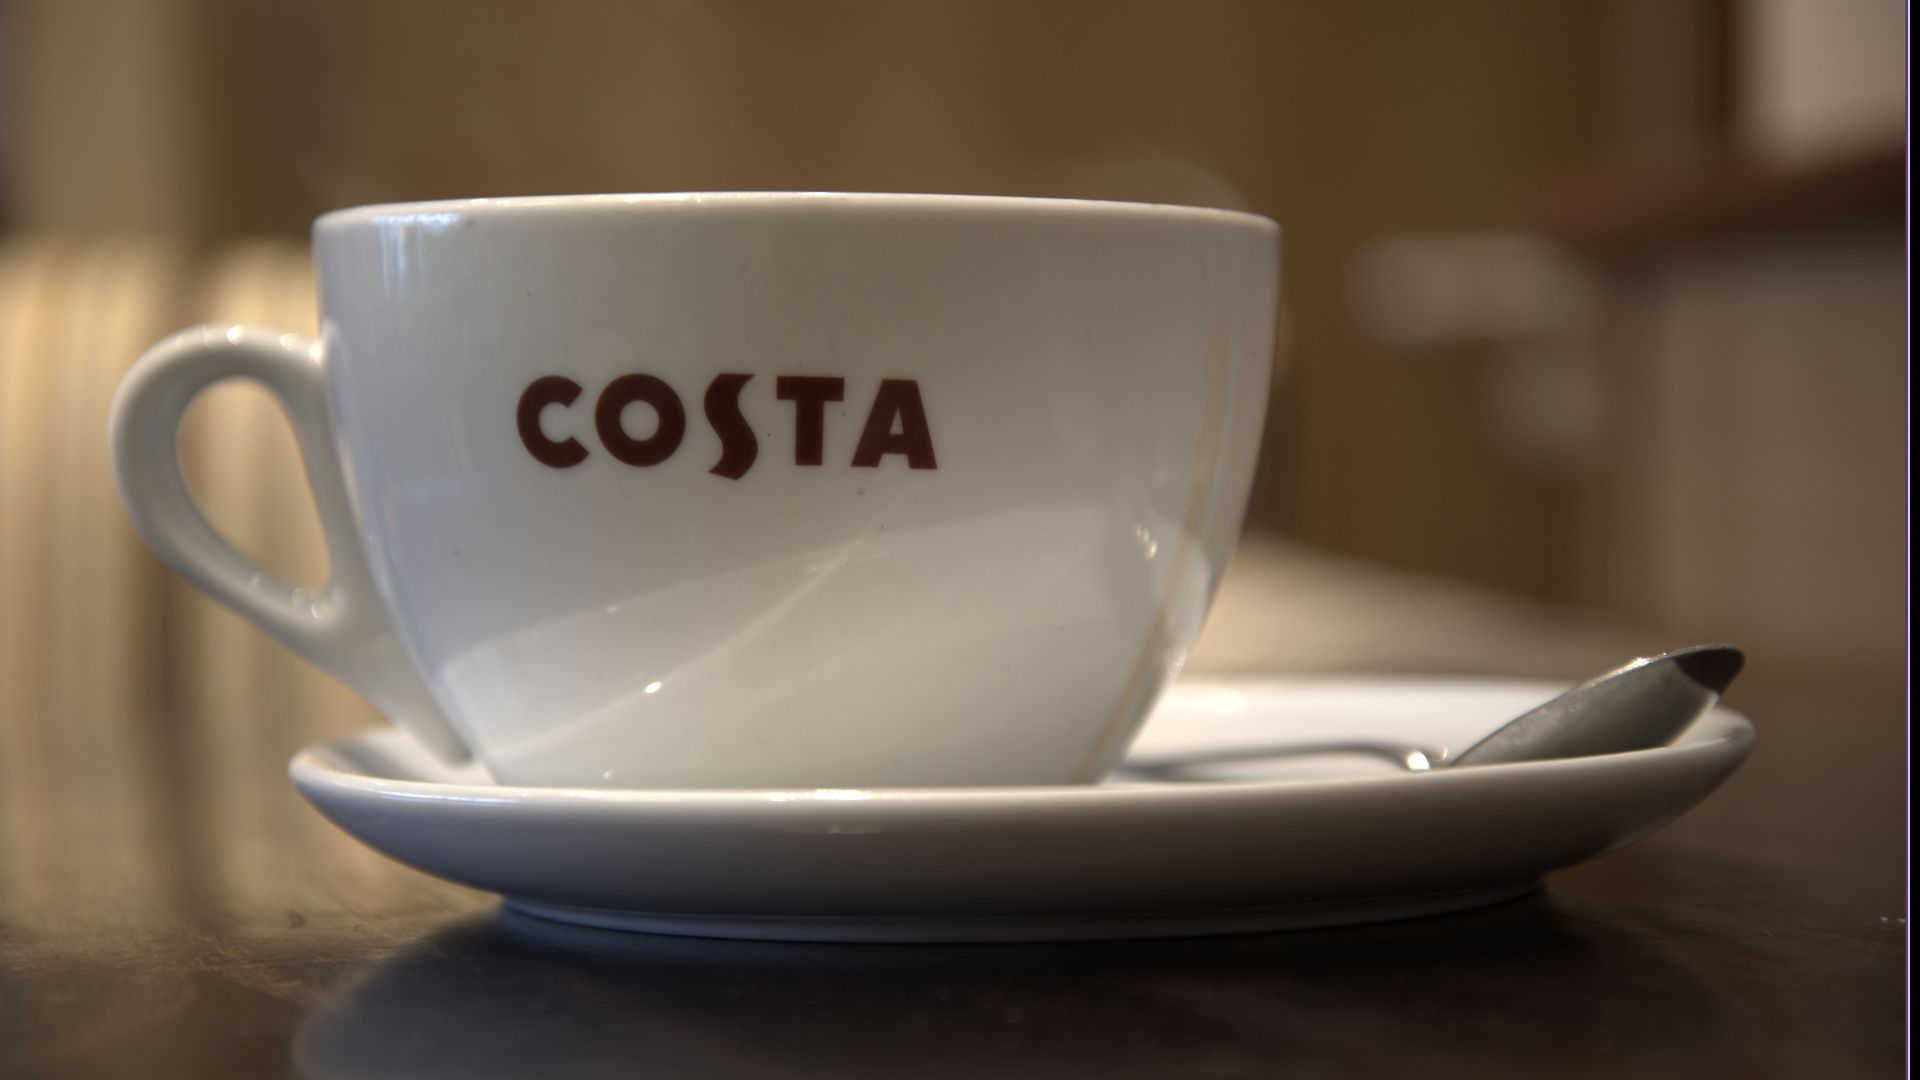 A Costa coffee cup.